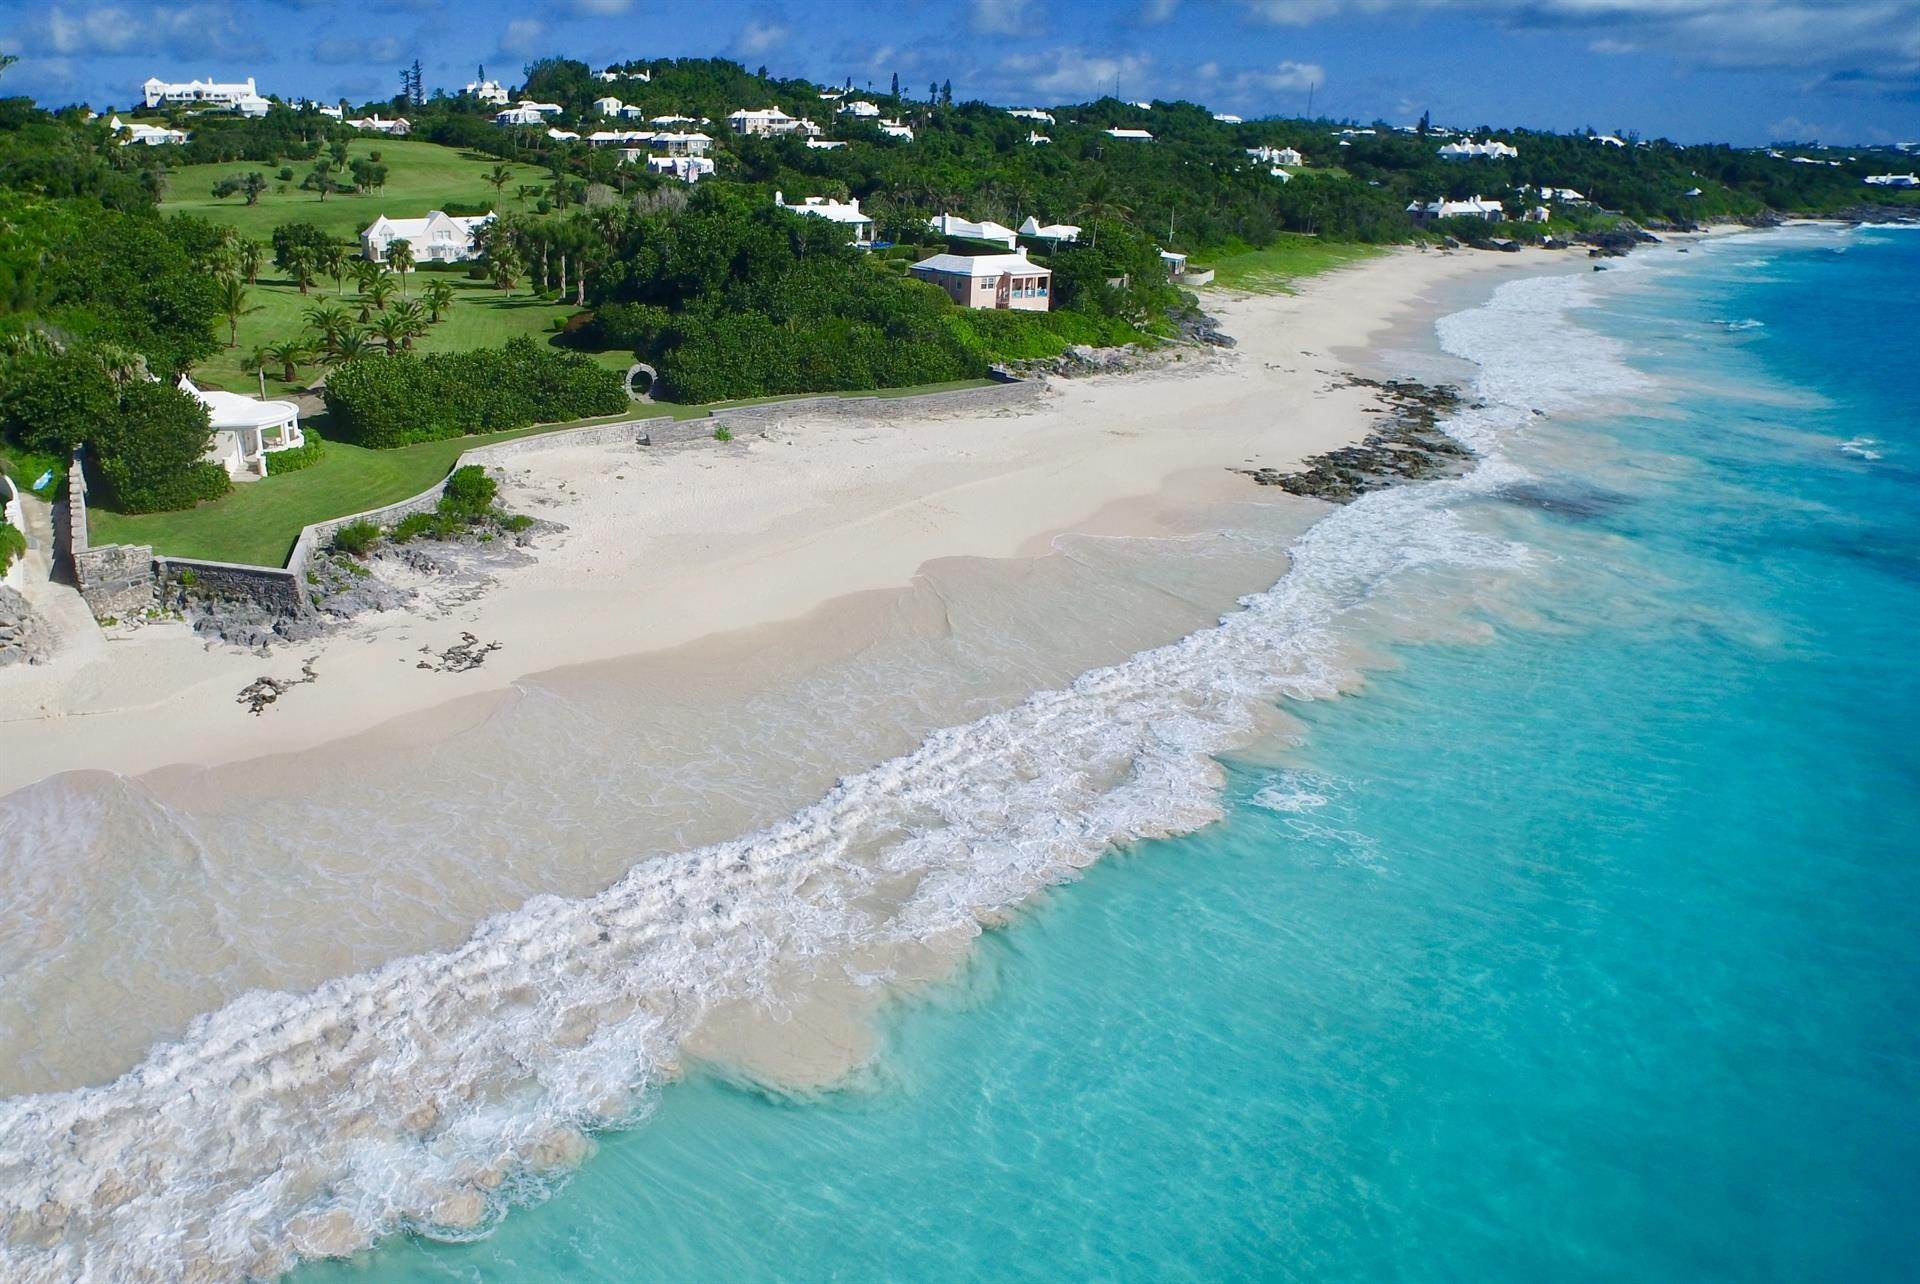 Property for Sale at Chelston on Grape Bay Beach Chelston on Grape Bay Beach, 12 Grape Bay Drive,Bermuda – Sinclair Realty